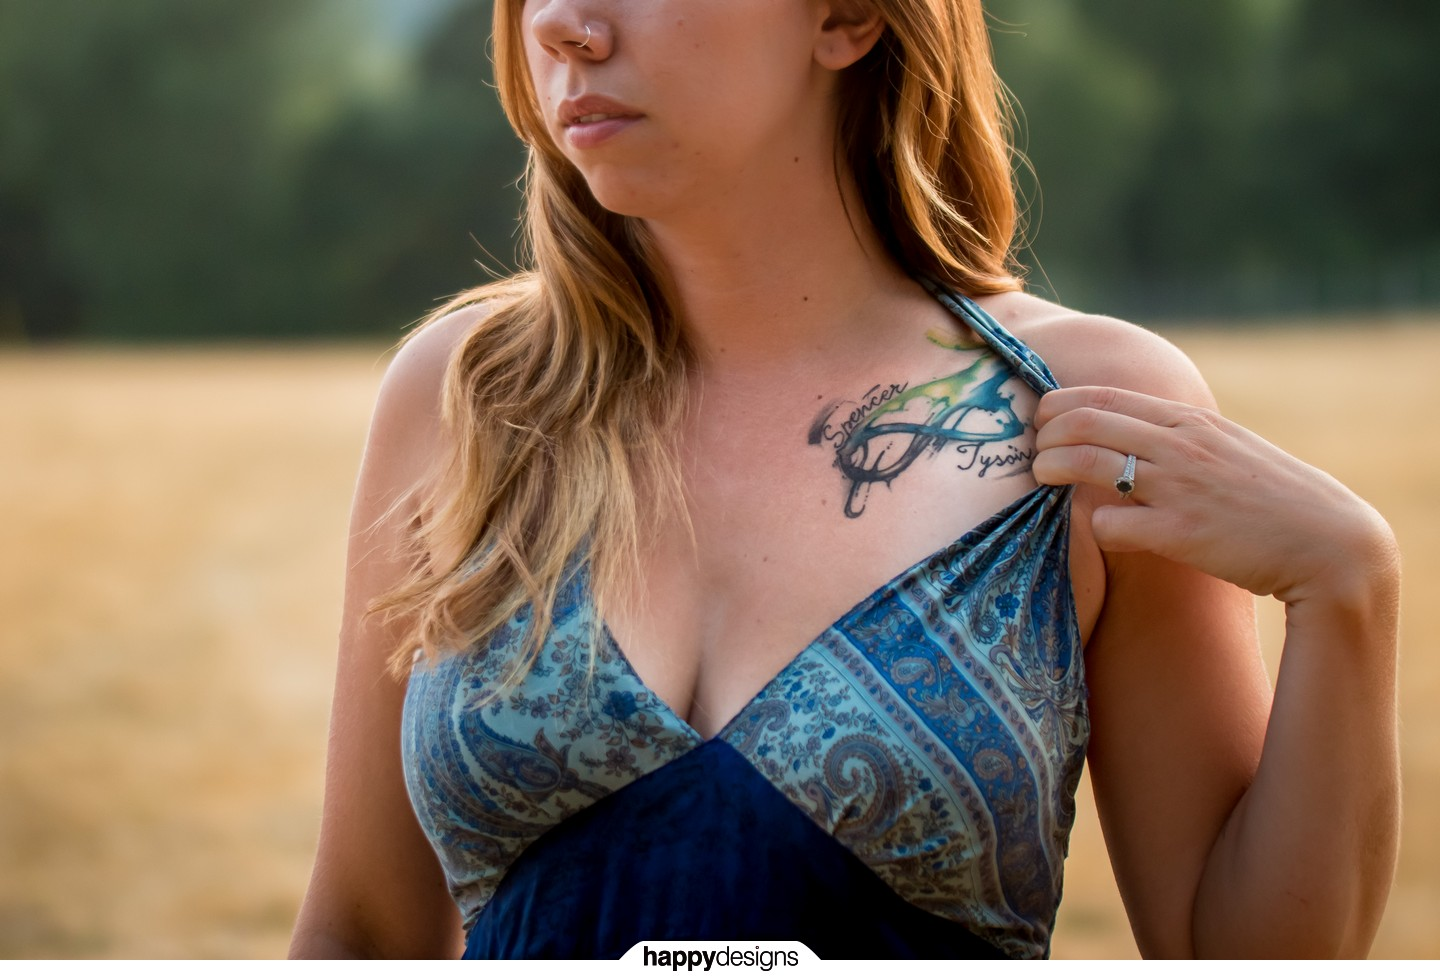 20150804 - tattoo triptych - Erica Champion-0005